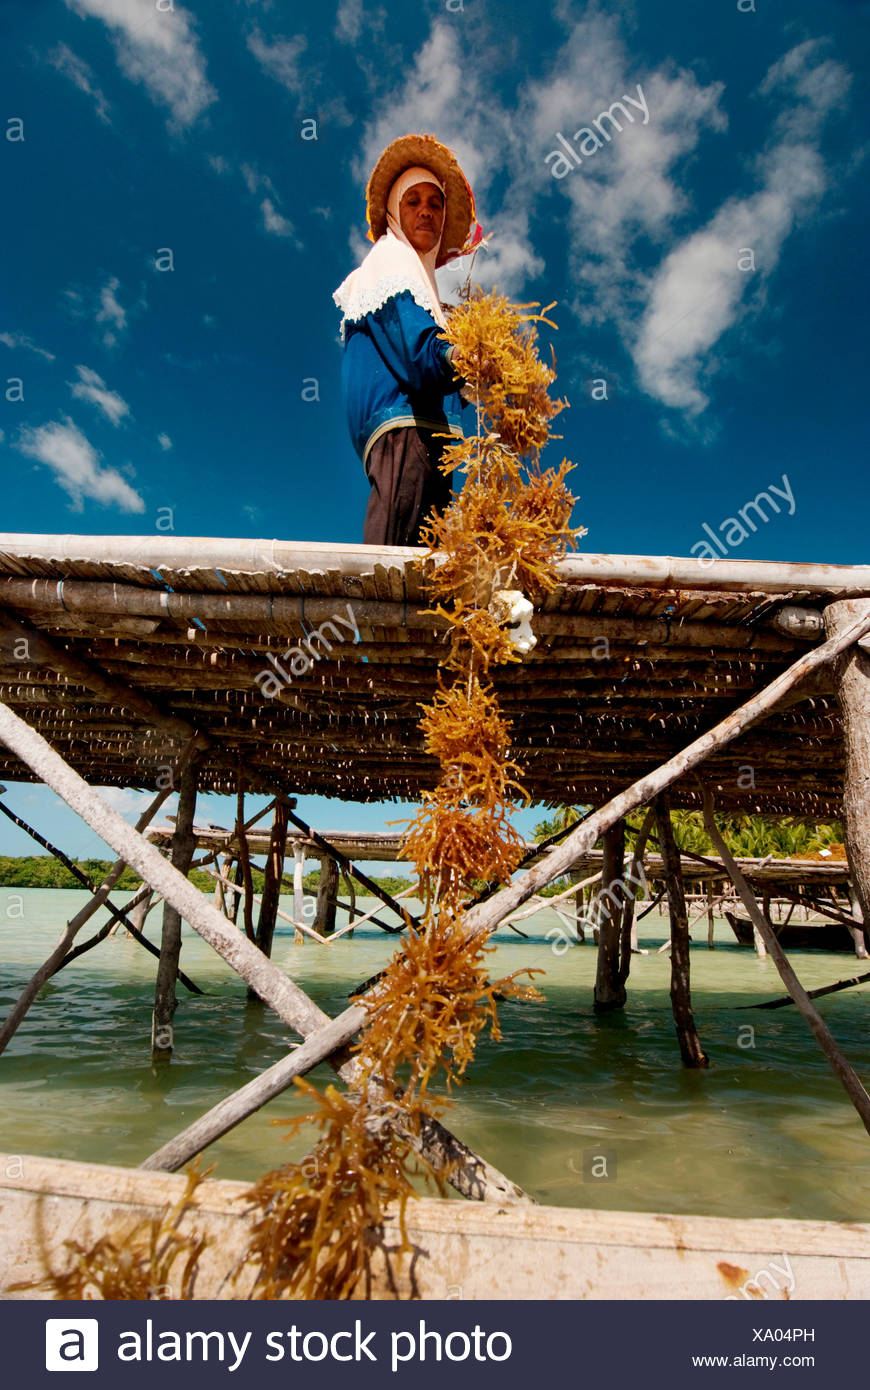 Wa Nuri is part of a cooperative of fisherman and aquaculture workers trying to create more sustainable practices in the Wakatobi region of Indonesia. Various projects through-out Indonesia where the international conservation organization The Nature Cons Stock Photo